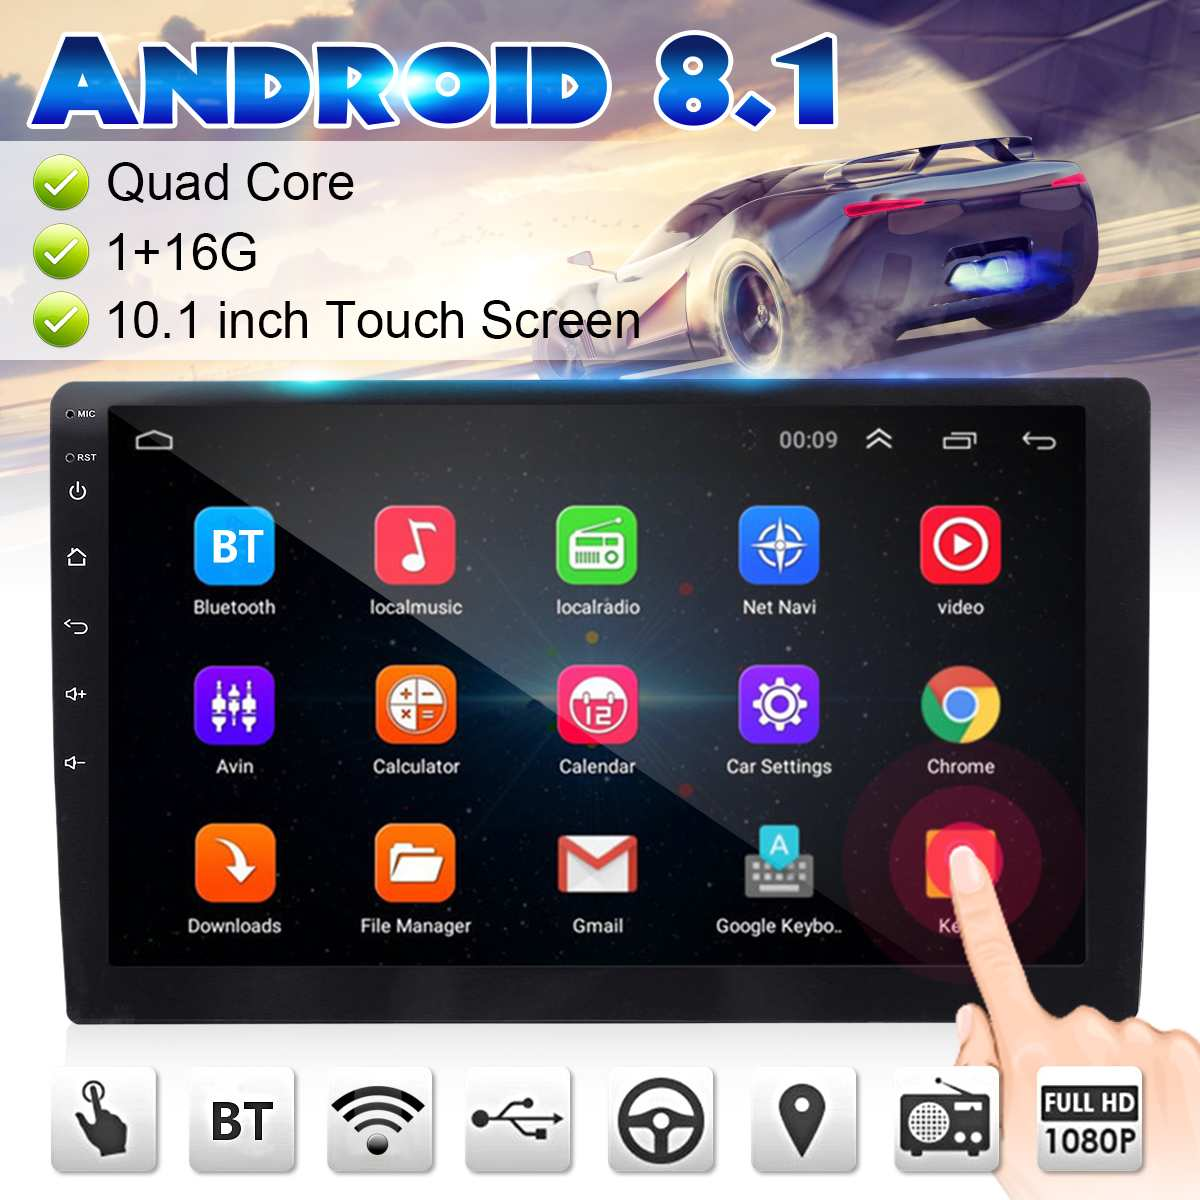 7/9/10.1 Inch Android 8.1 Car Stereo 2DIN bluetooth WIFI GPS Nav Quad Core Radio Video MP5 Player Car Multimedia Player 1+16G7/9/10.1 Inch Android 8.1 Car Stereo 2DIN bluetooth WIFI GPS Nav Quad Core Radio Video MP5 Player Car Multimedia Player 1+16G